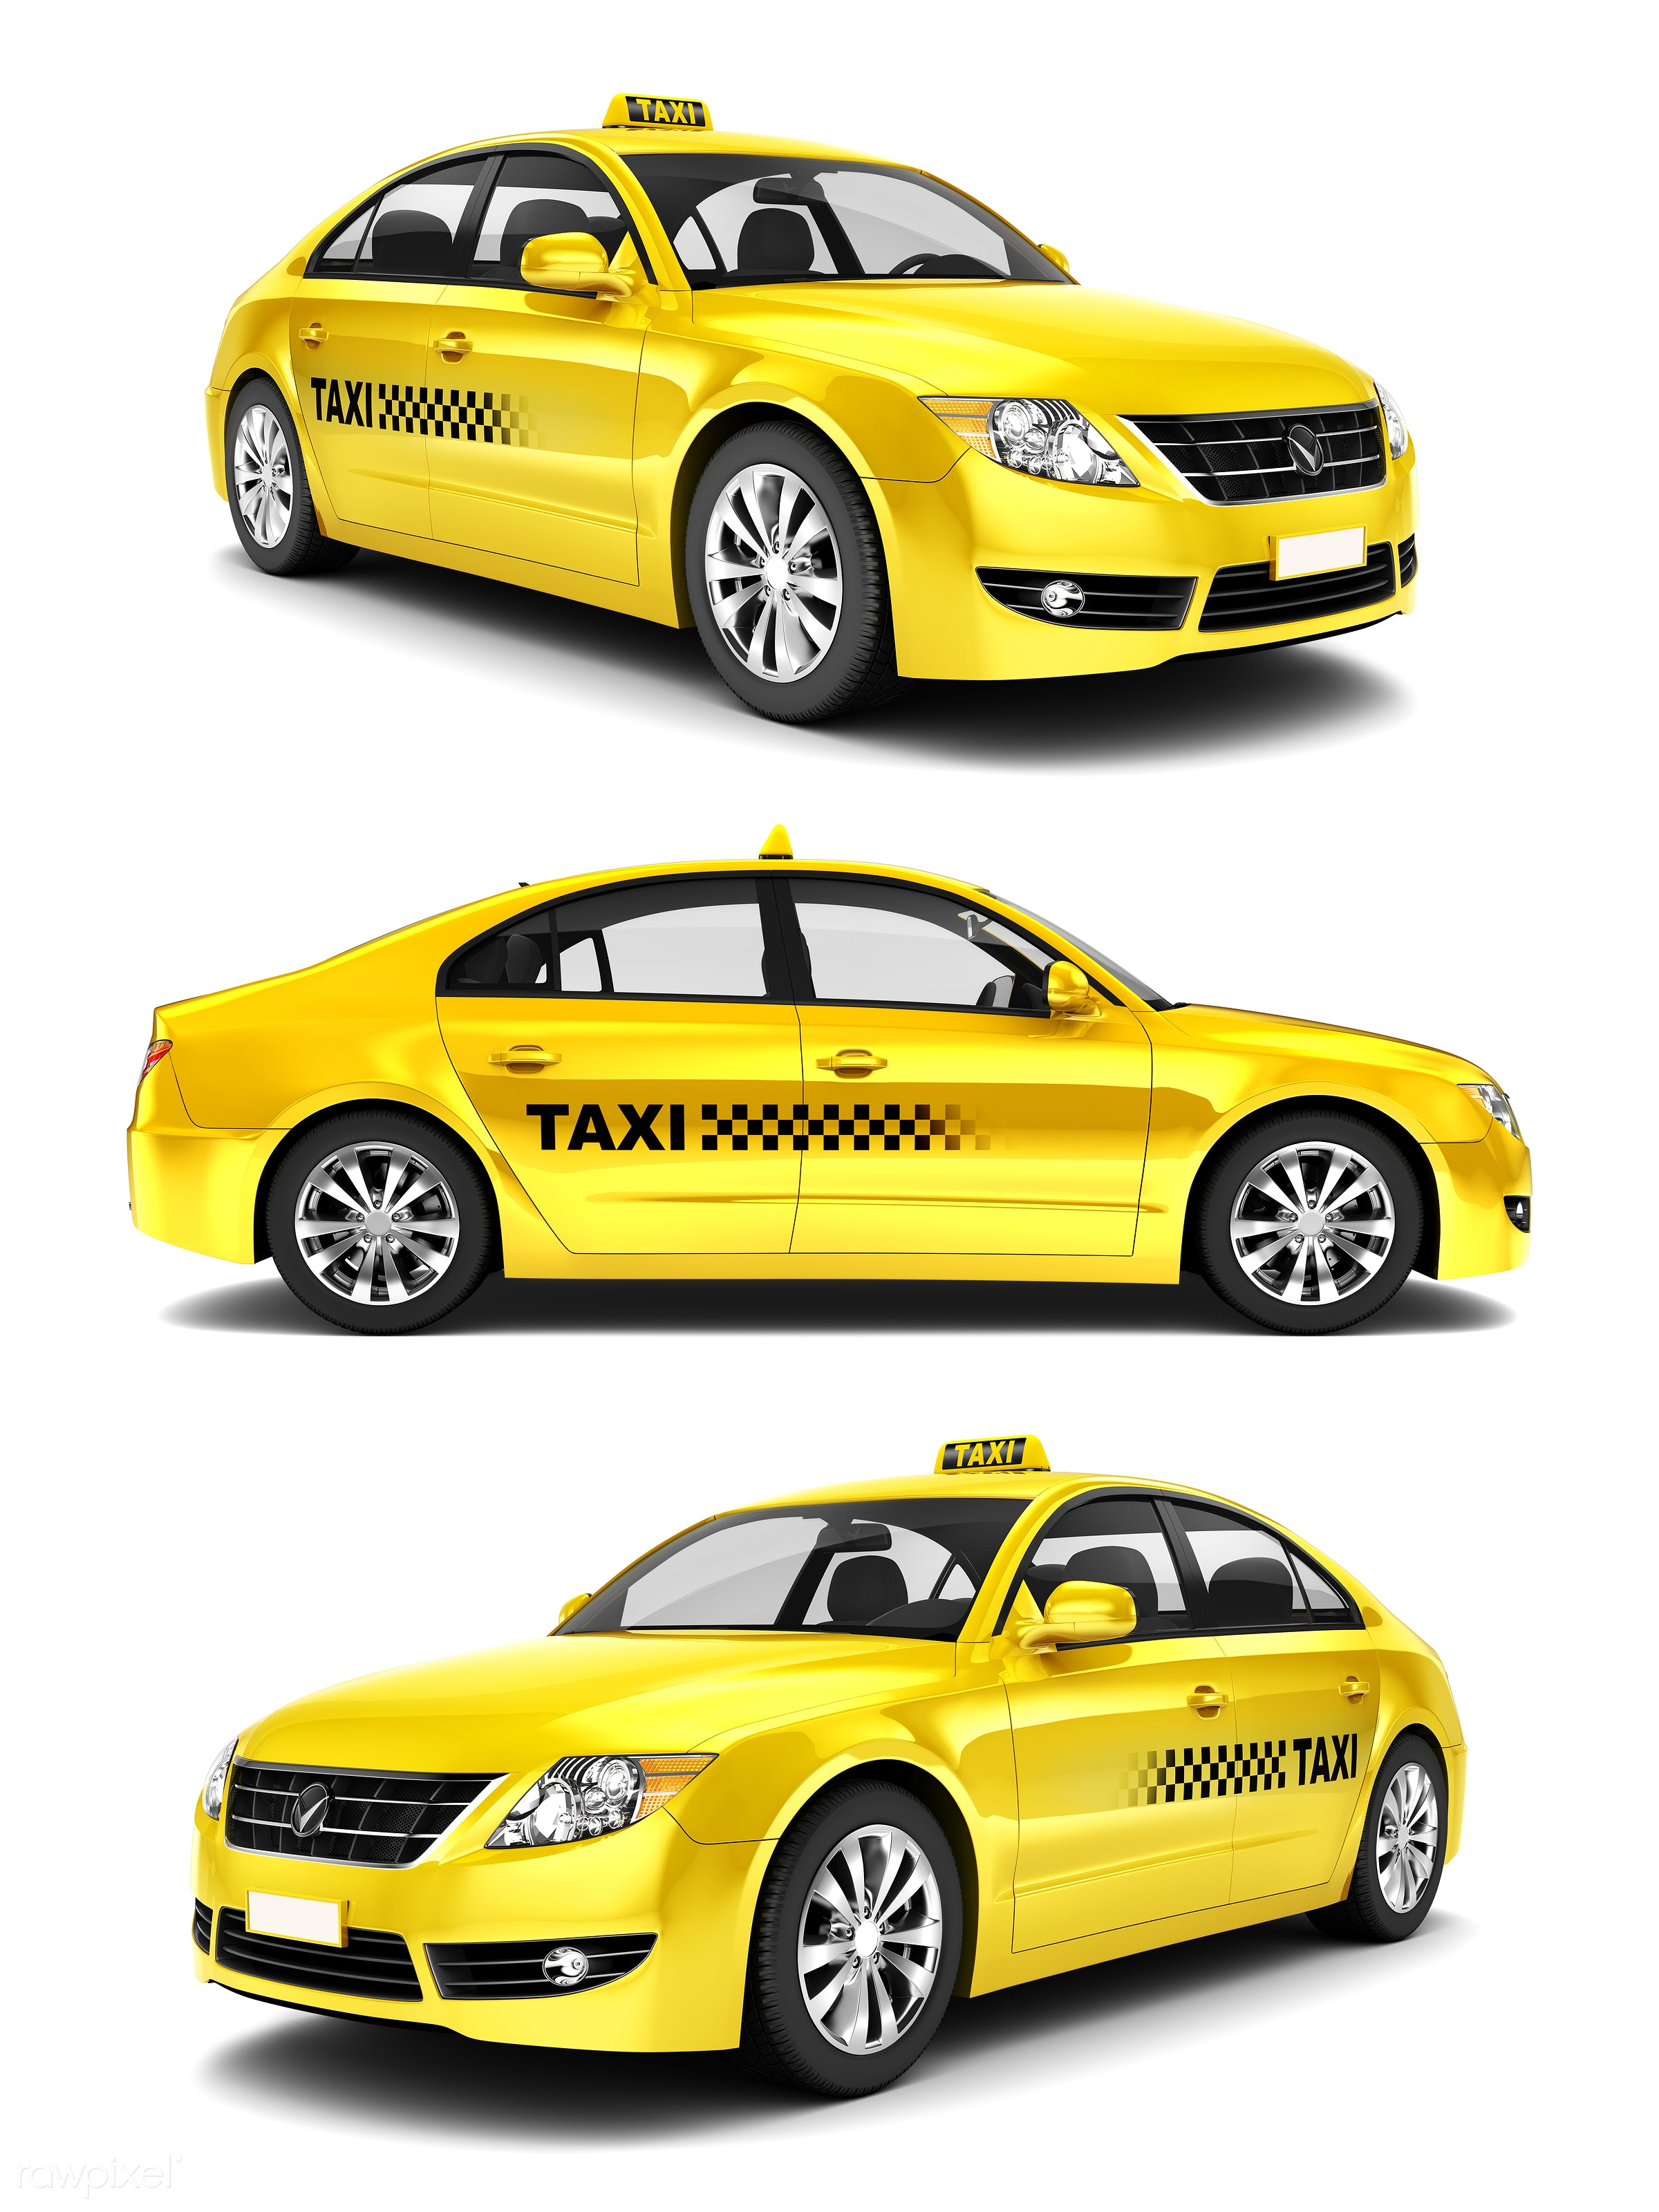 Three dimensional image of car - cab, car, 3d, automobile, automotive, brandless, collection, concept car, graphic, holiday...